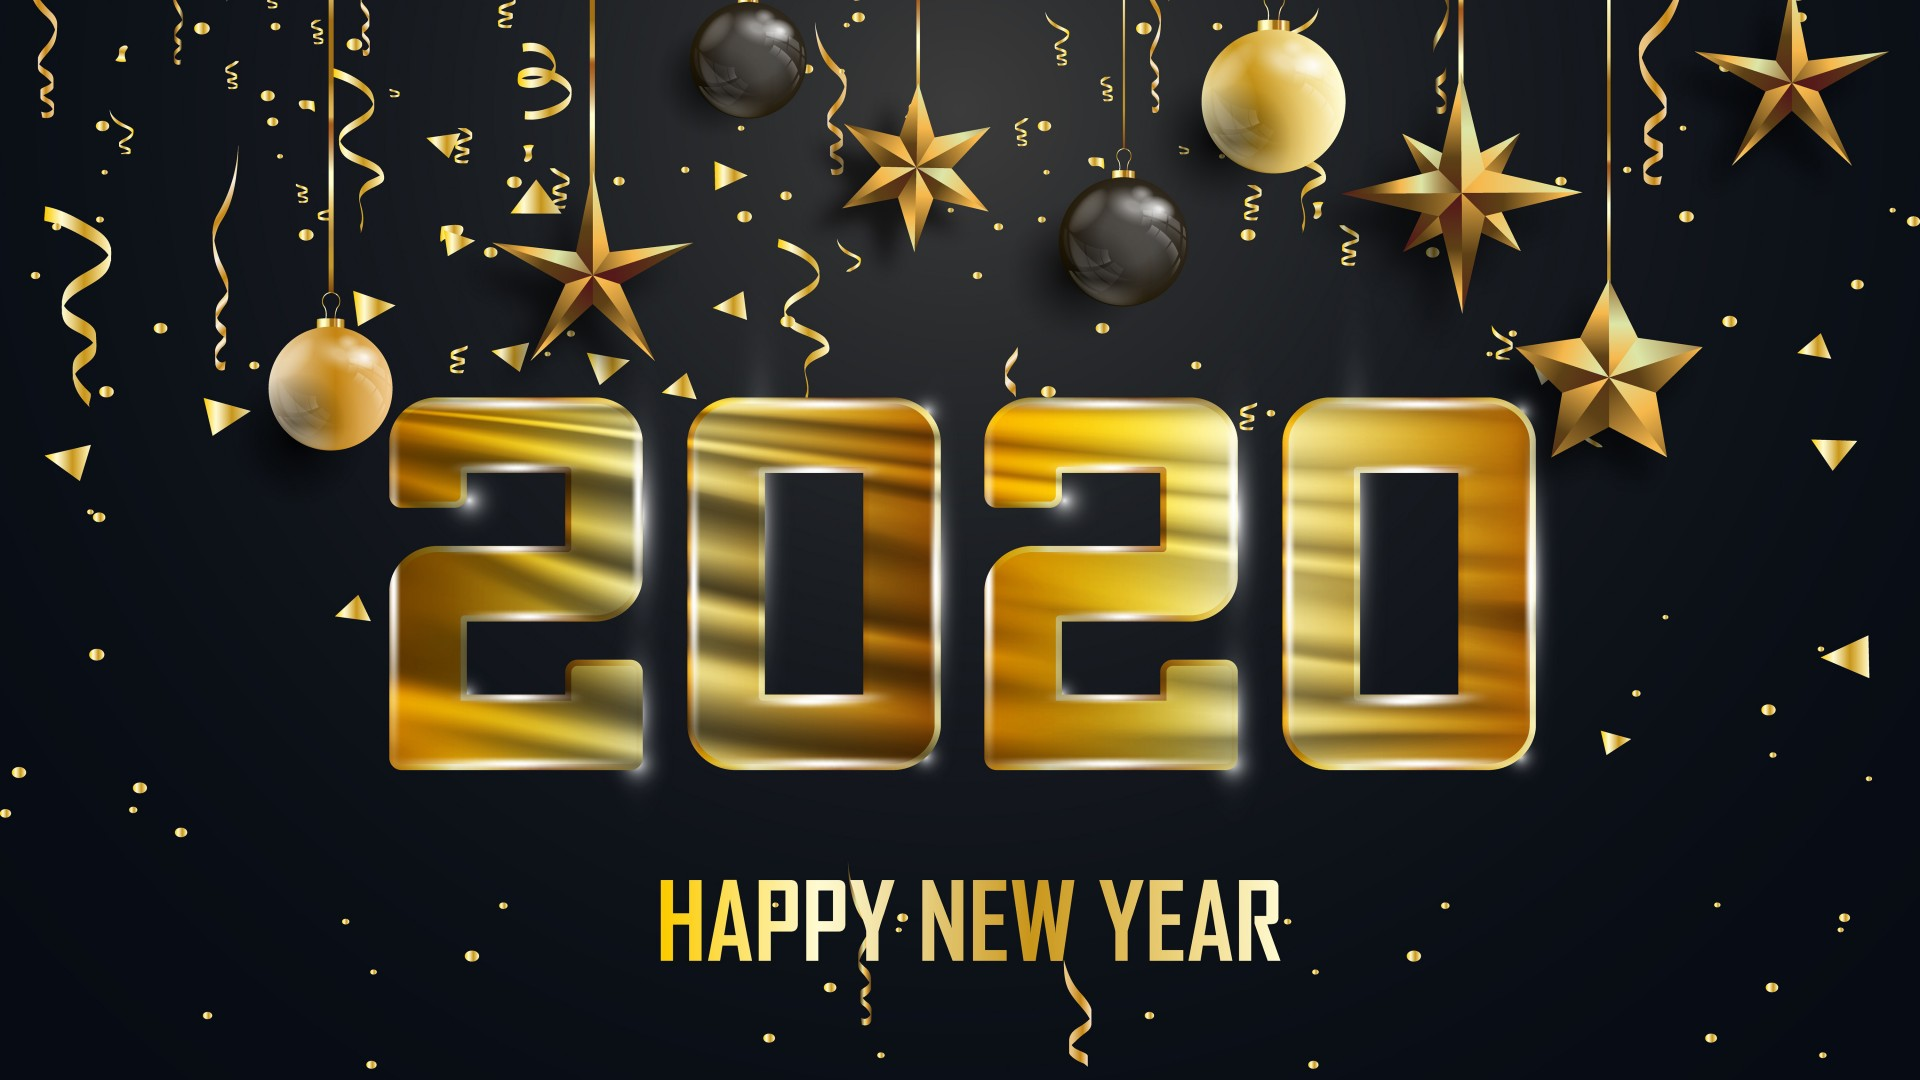 Star Wars New Year 2020 Wallpaper